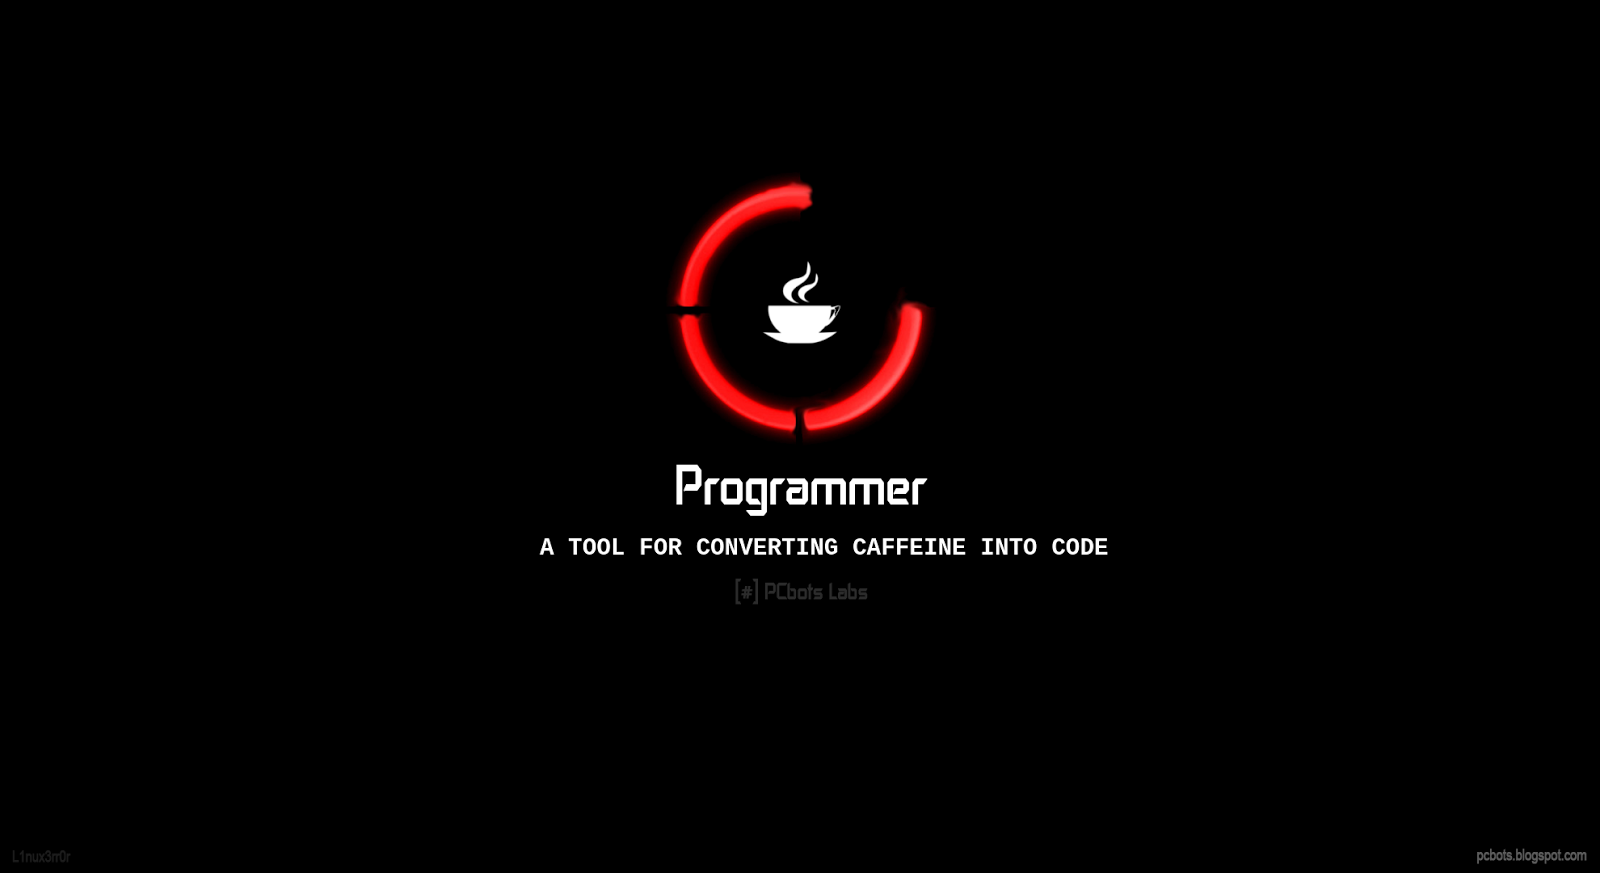 Love Wallpaper Java : Programmers And coders Wallpapers HD By Pcbots - Part - II ...